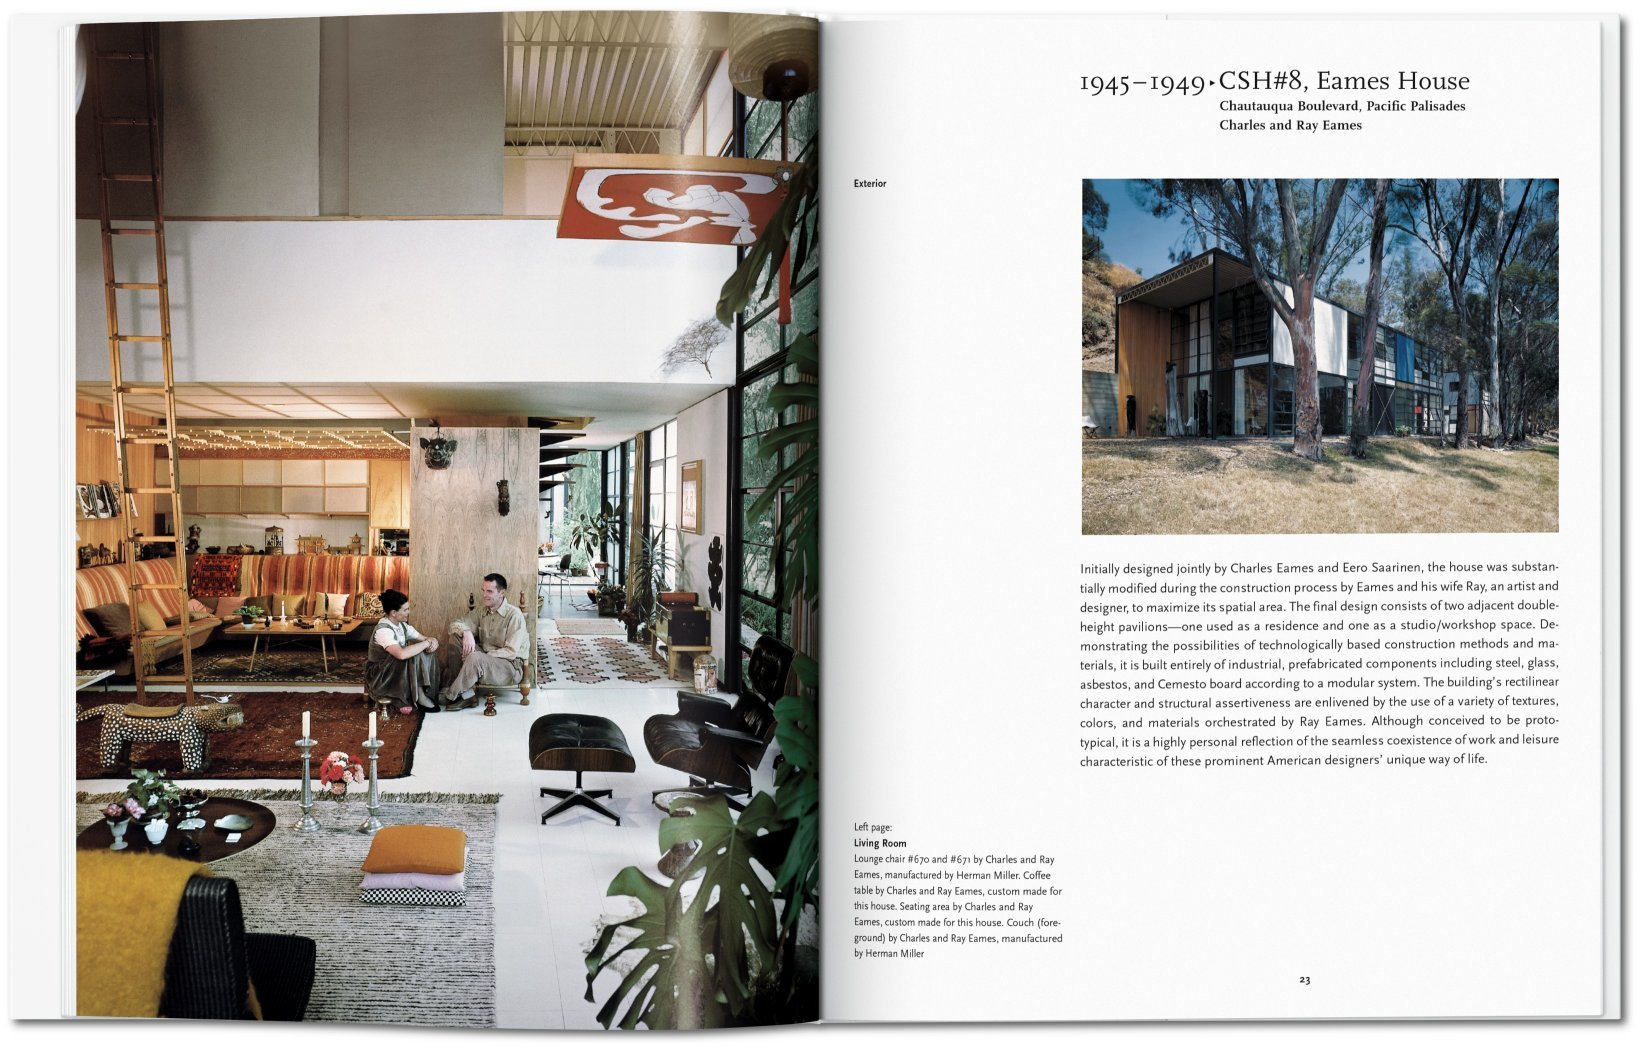 case study houses book taschen Redefining the modern home: a monumental retrospective of the case study houses program the case study house program (1945-66) was an exceptional, innovative event in the history of american architecture and remains to this day unique.